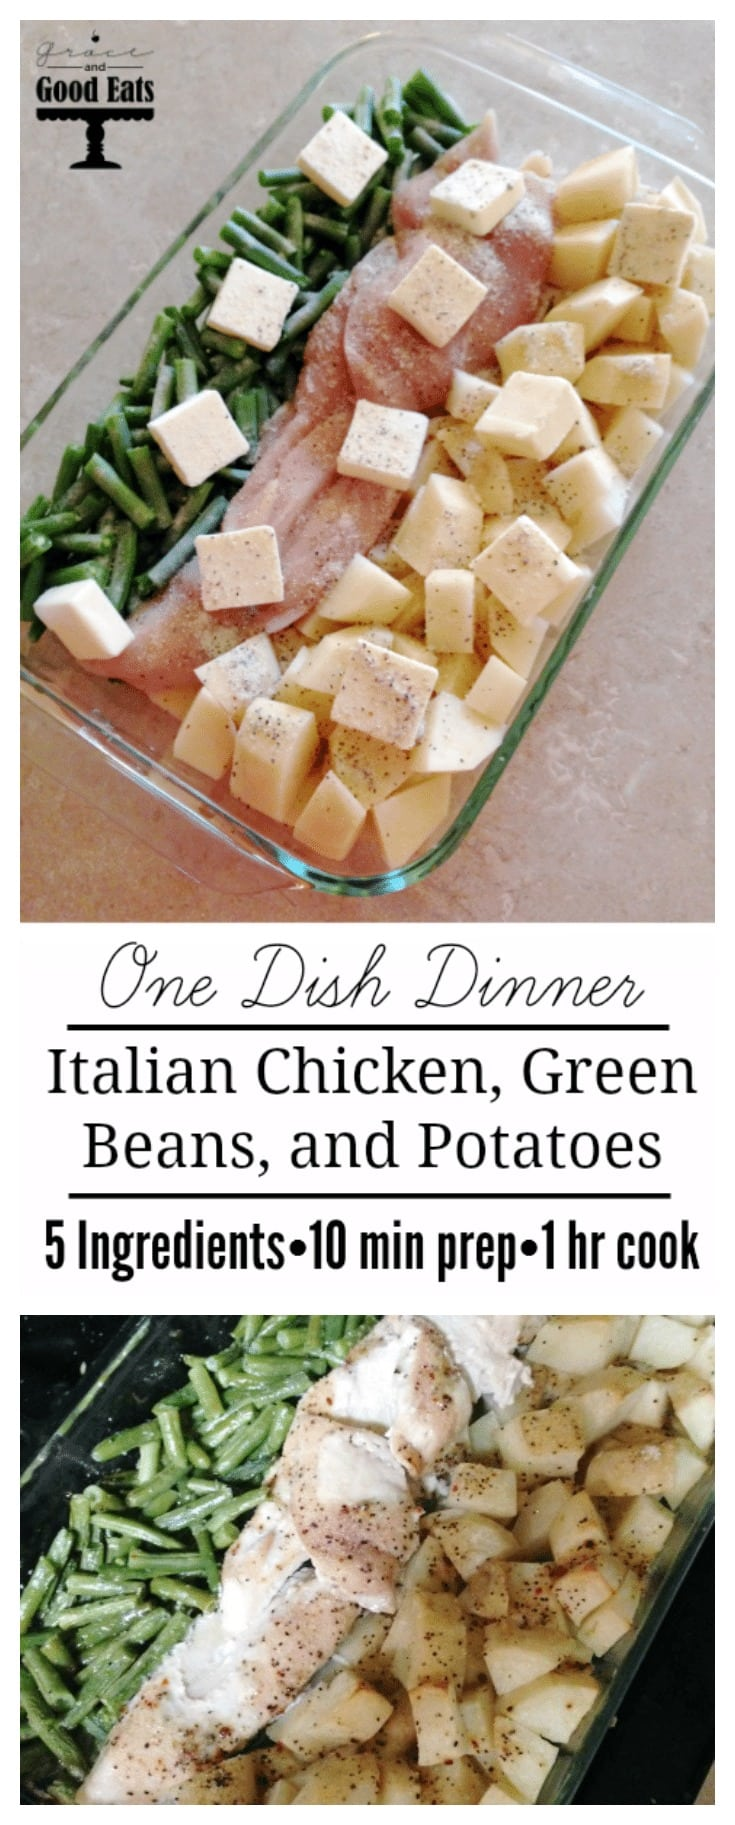 One dish dinner! Italian chicken, green beans, and potatoes. 5 ingredients, easy and delicious! Will make this again for sure.